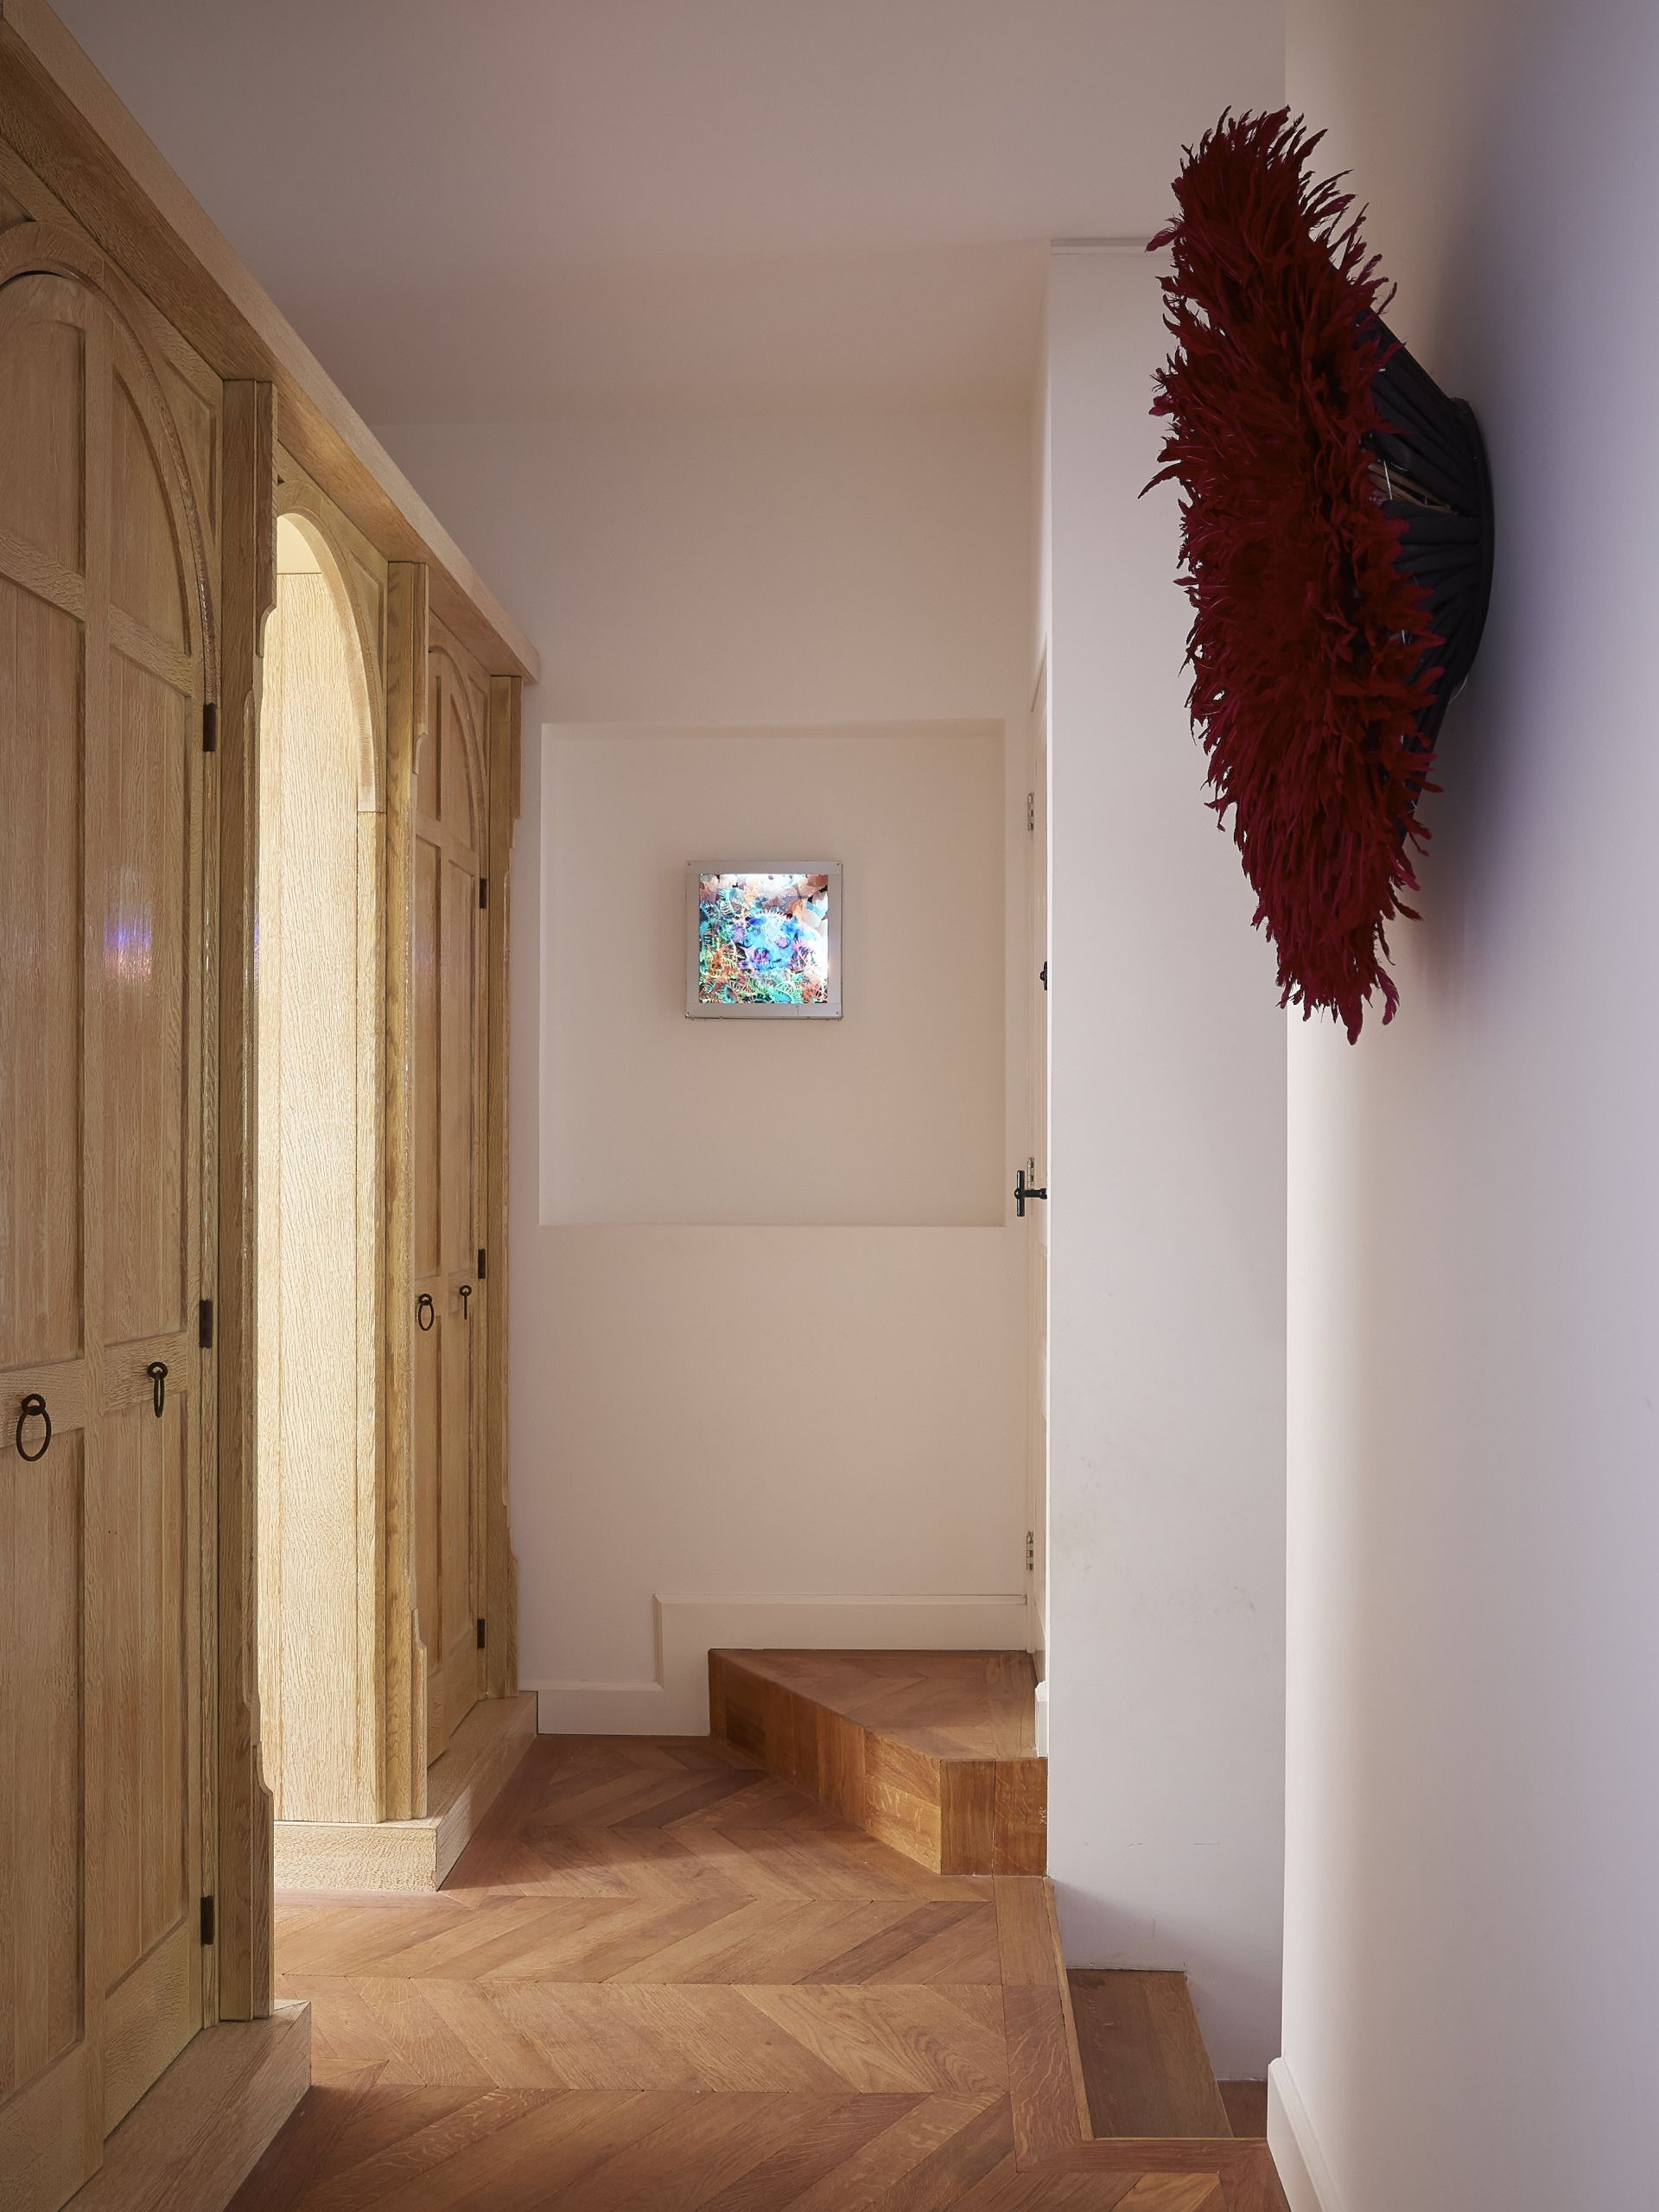 Dado rail hallway ideas  Hallway cabinets and contemporary art illuminated designed by